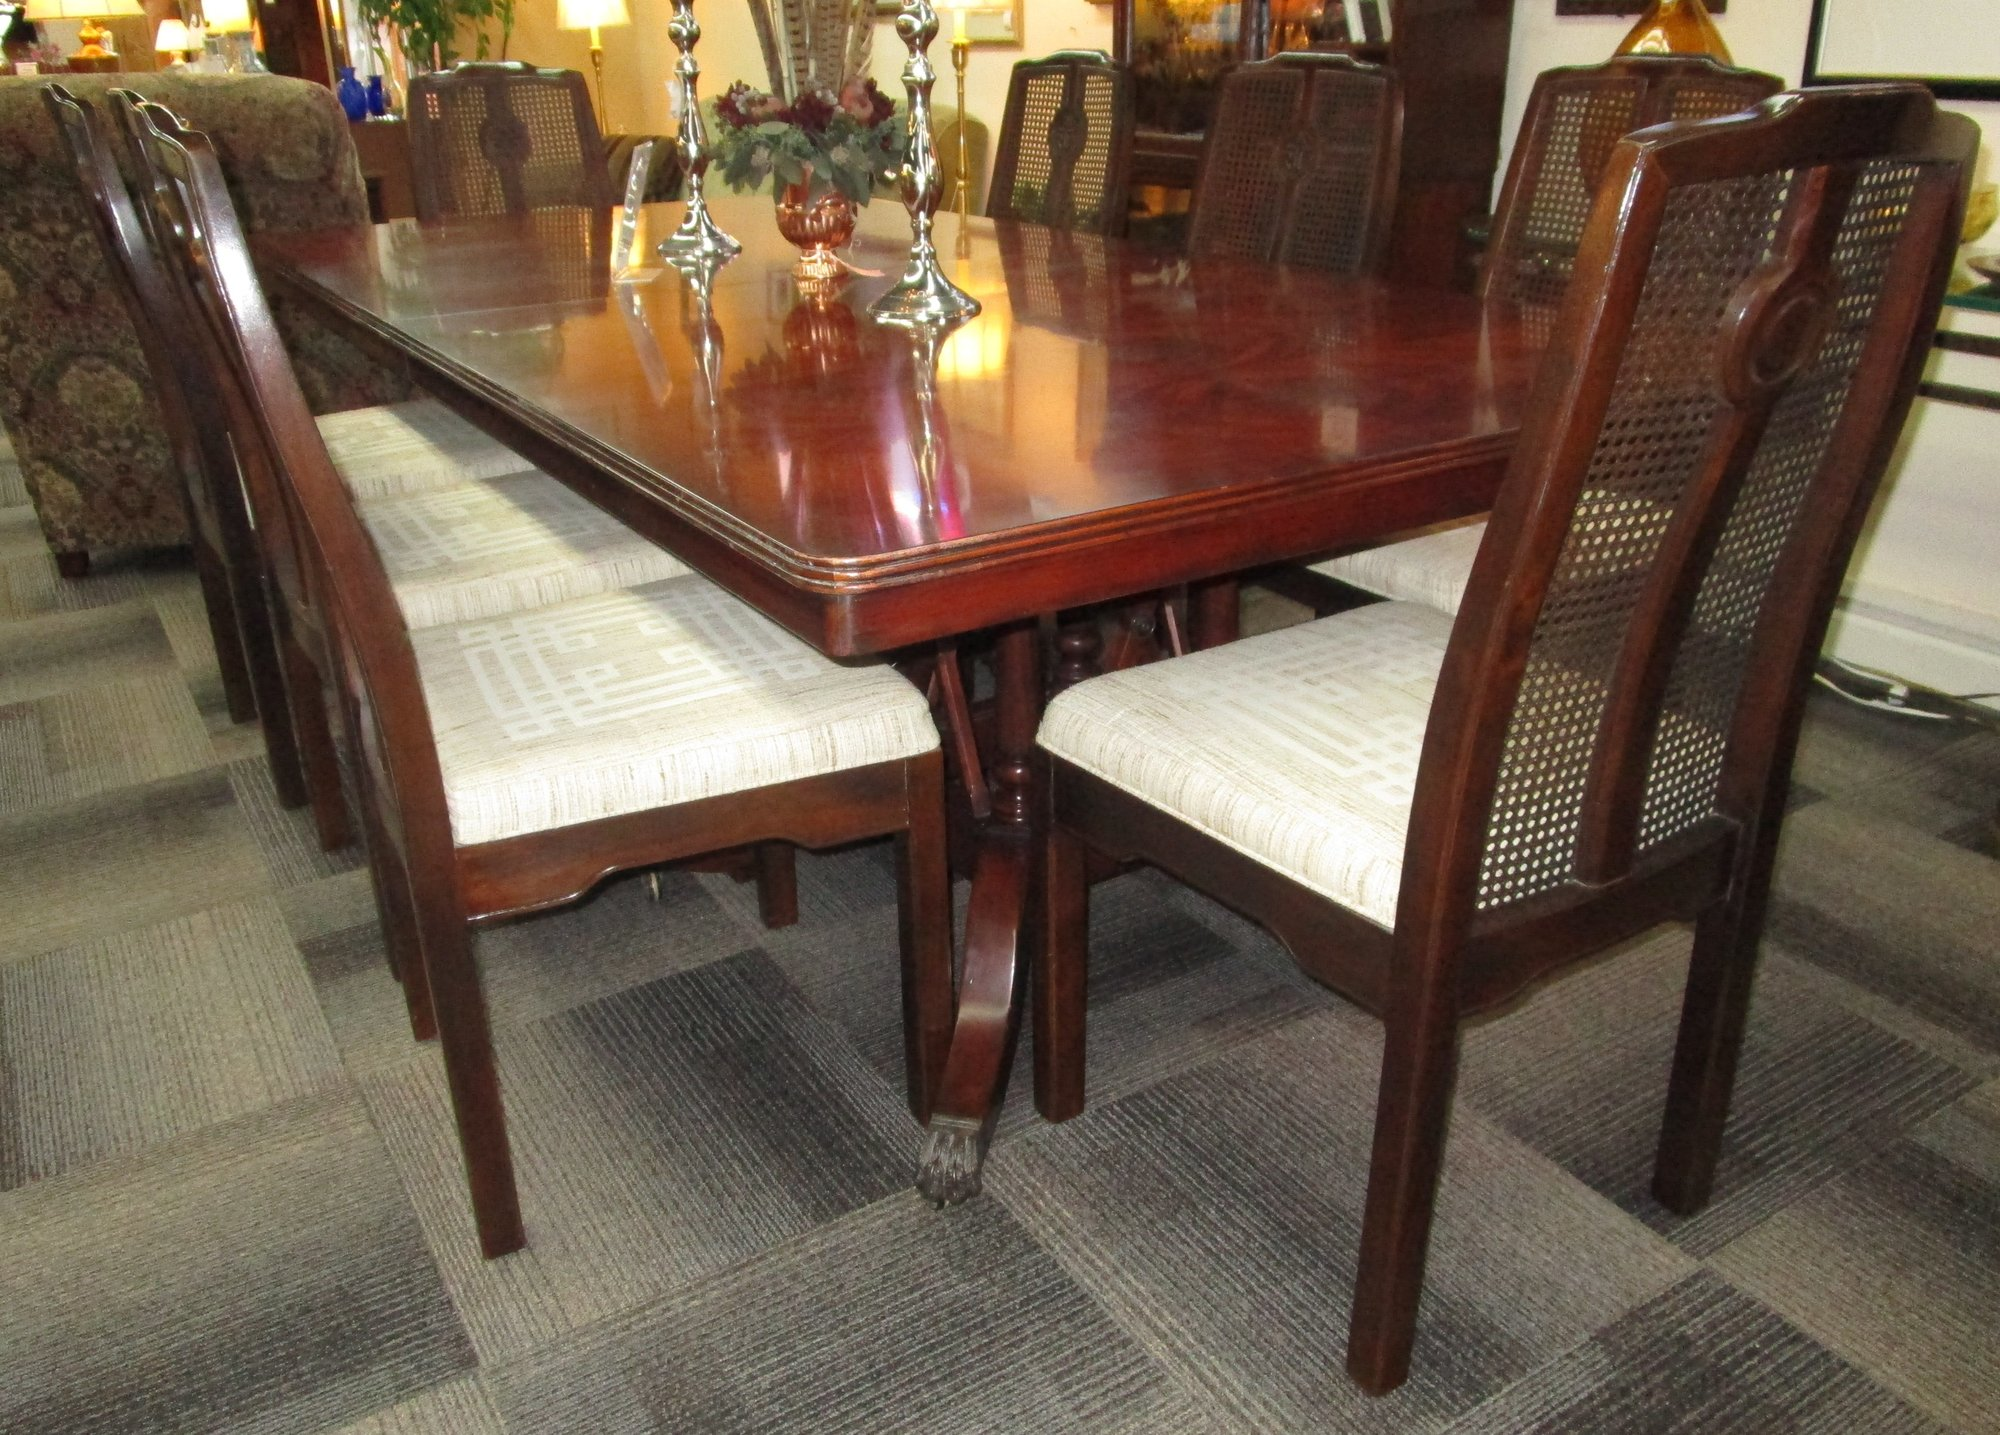 1 22910 Hickory White Table With 8 Drexel Chairs